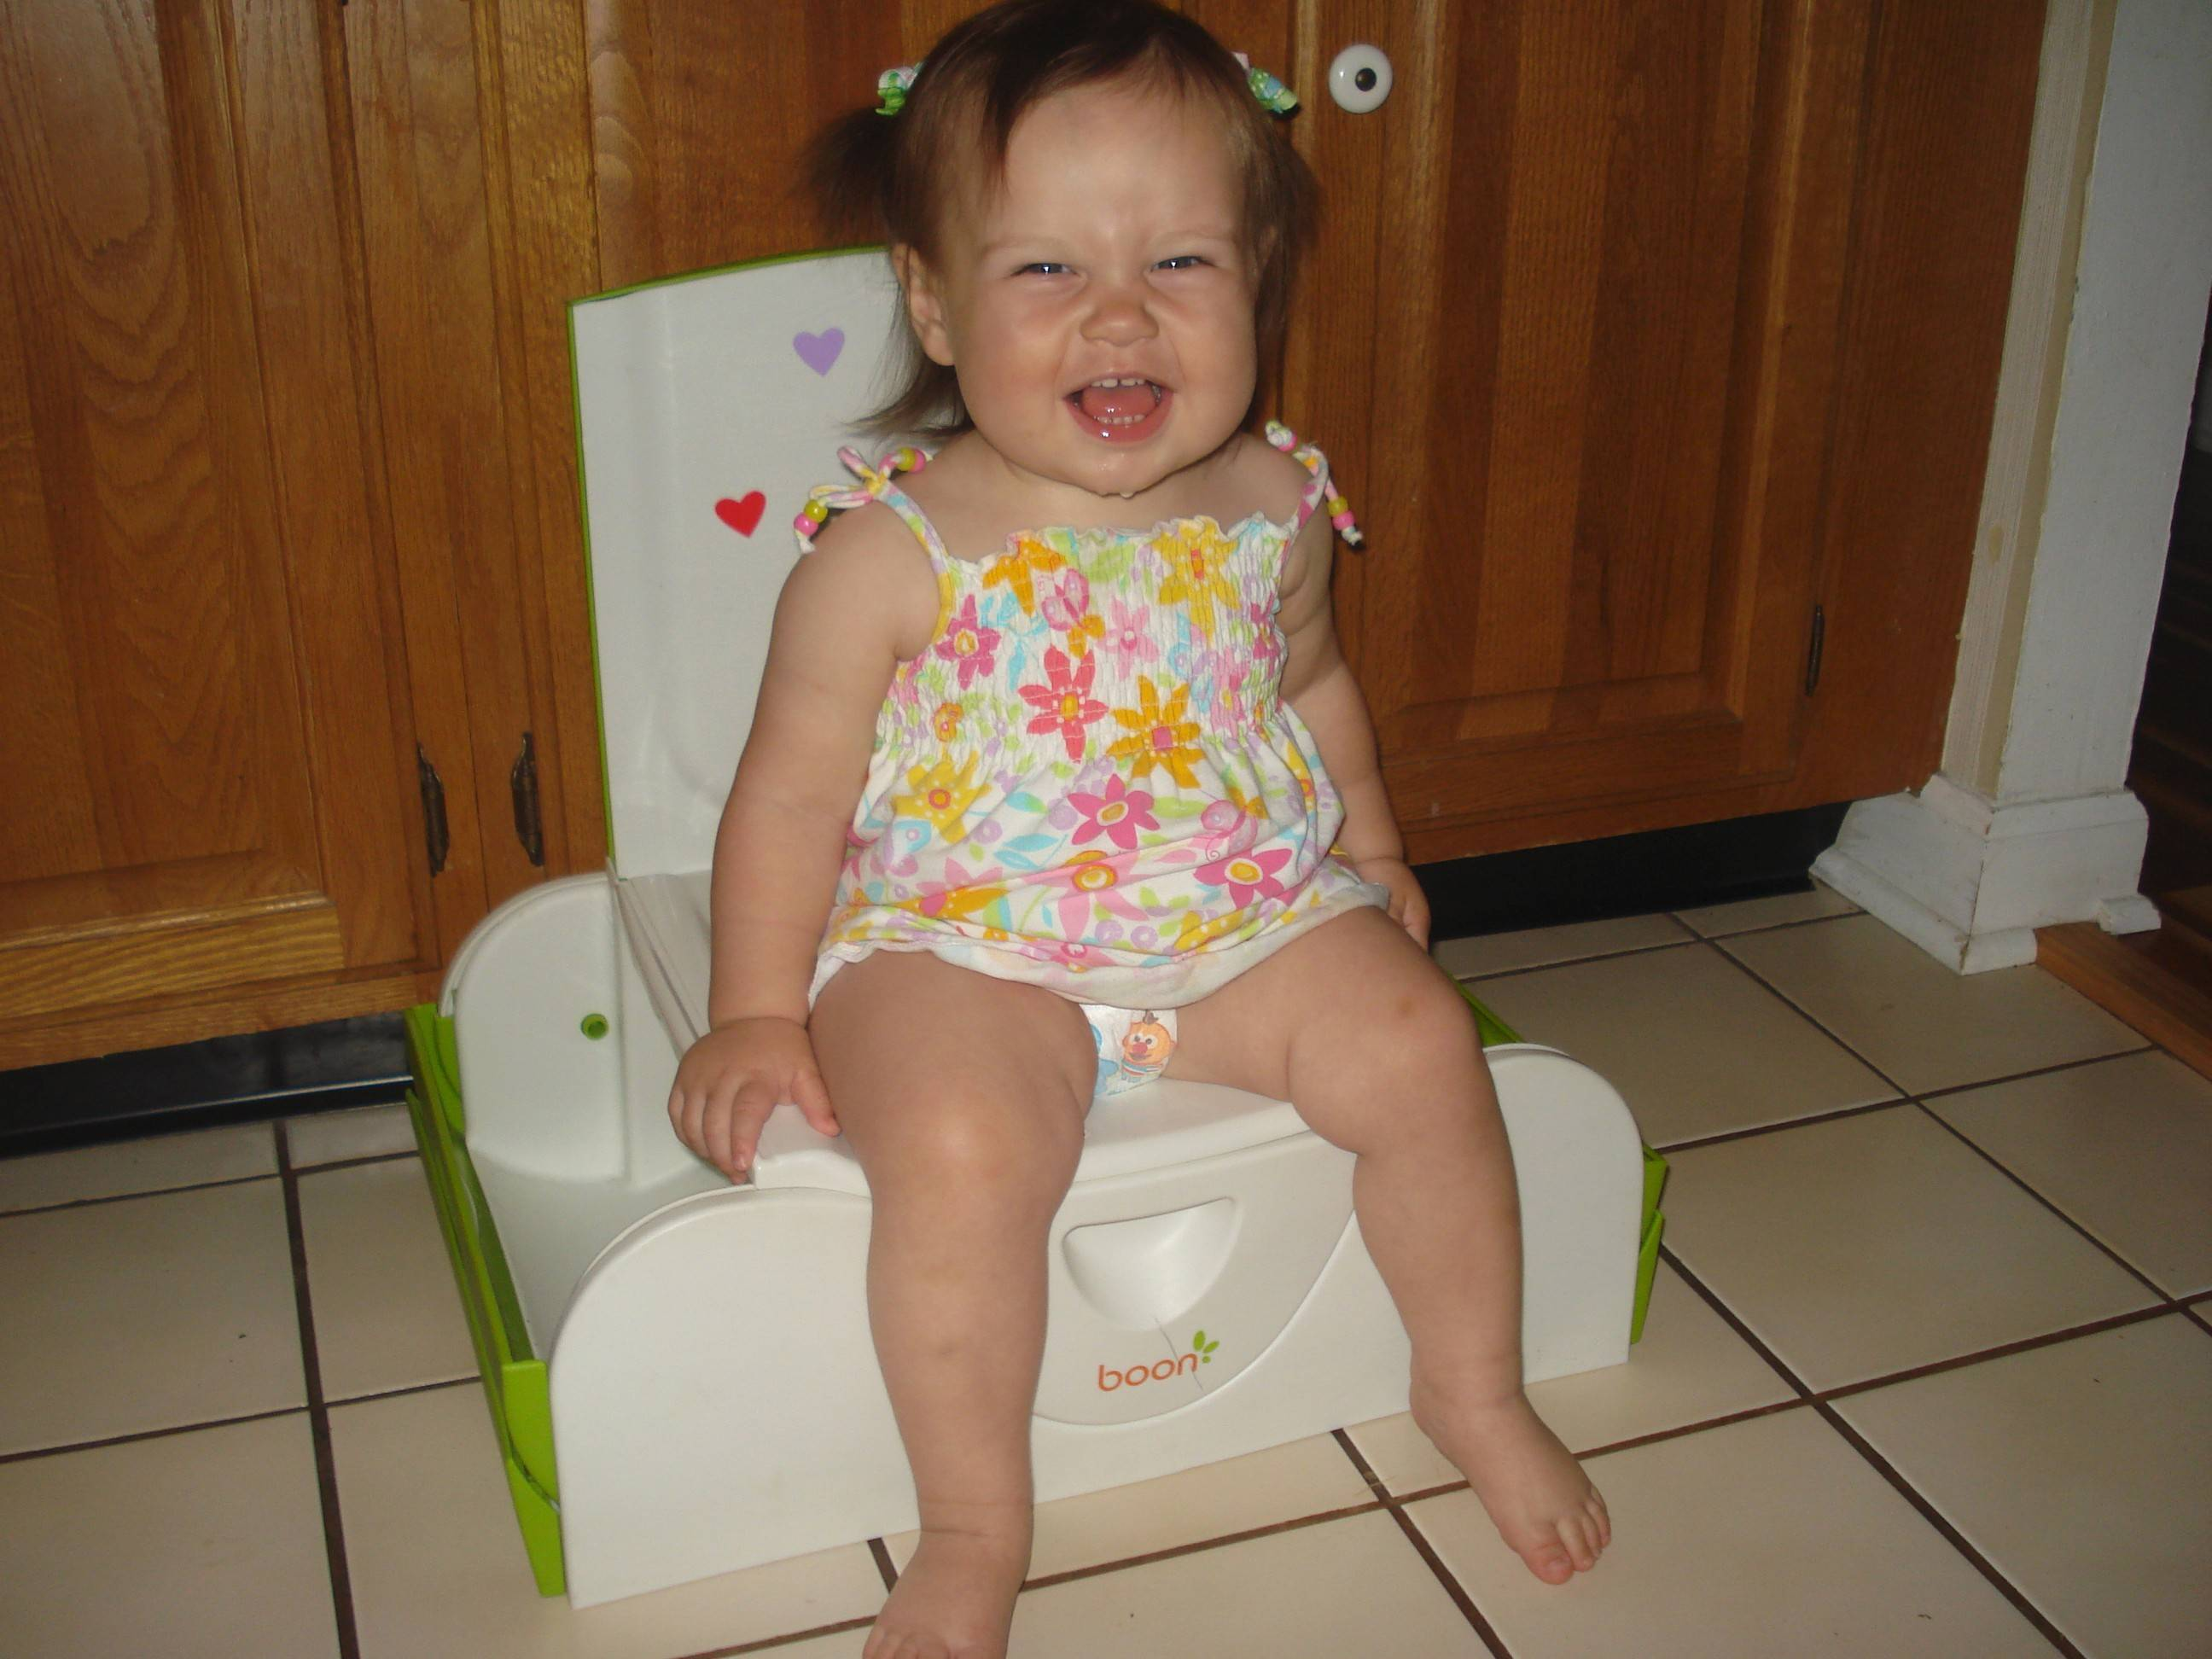 Sophie Slupski, 1, of Schaumburg, tries sitting on a potty for the first time. Anita Chandra-Puri, spokeswoman for the American Academy of Pediatrics said some children start showing an interest in the potty at around 18 months, but typically aren't ready to train until 2½. Sophie is the author's daughter.